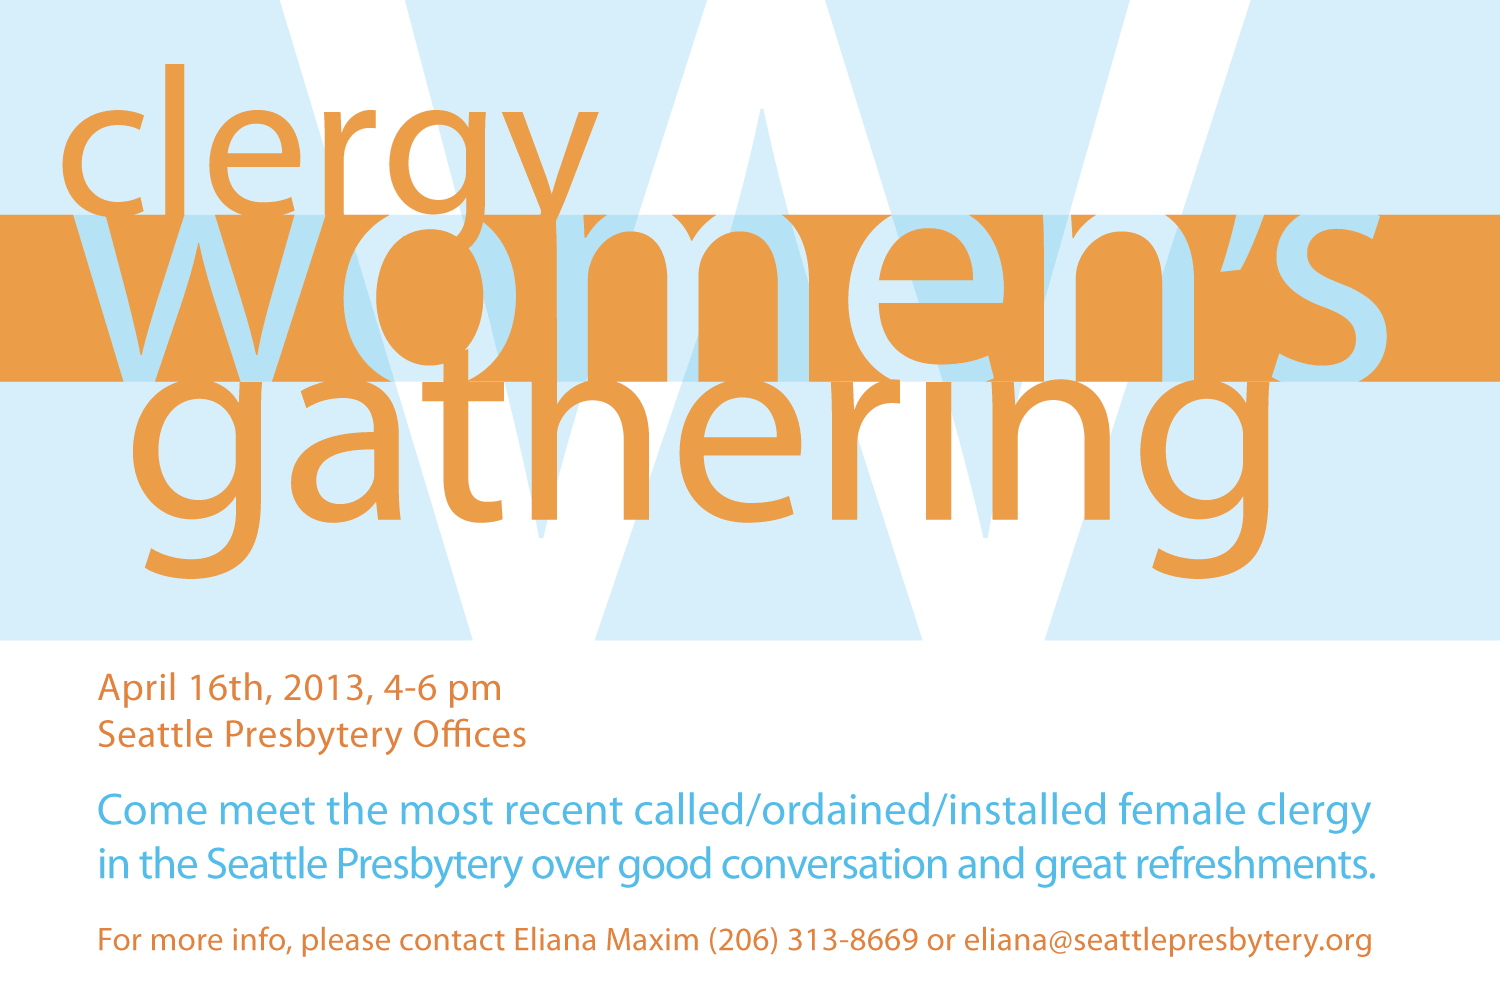 2013-Clergy-Women's-Gathering.png